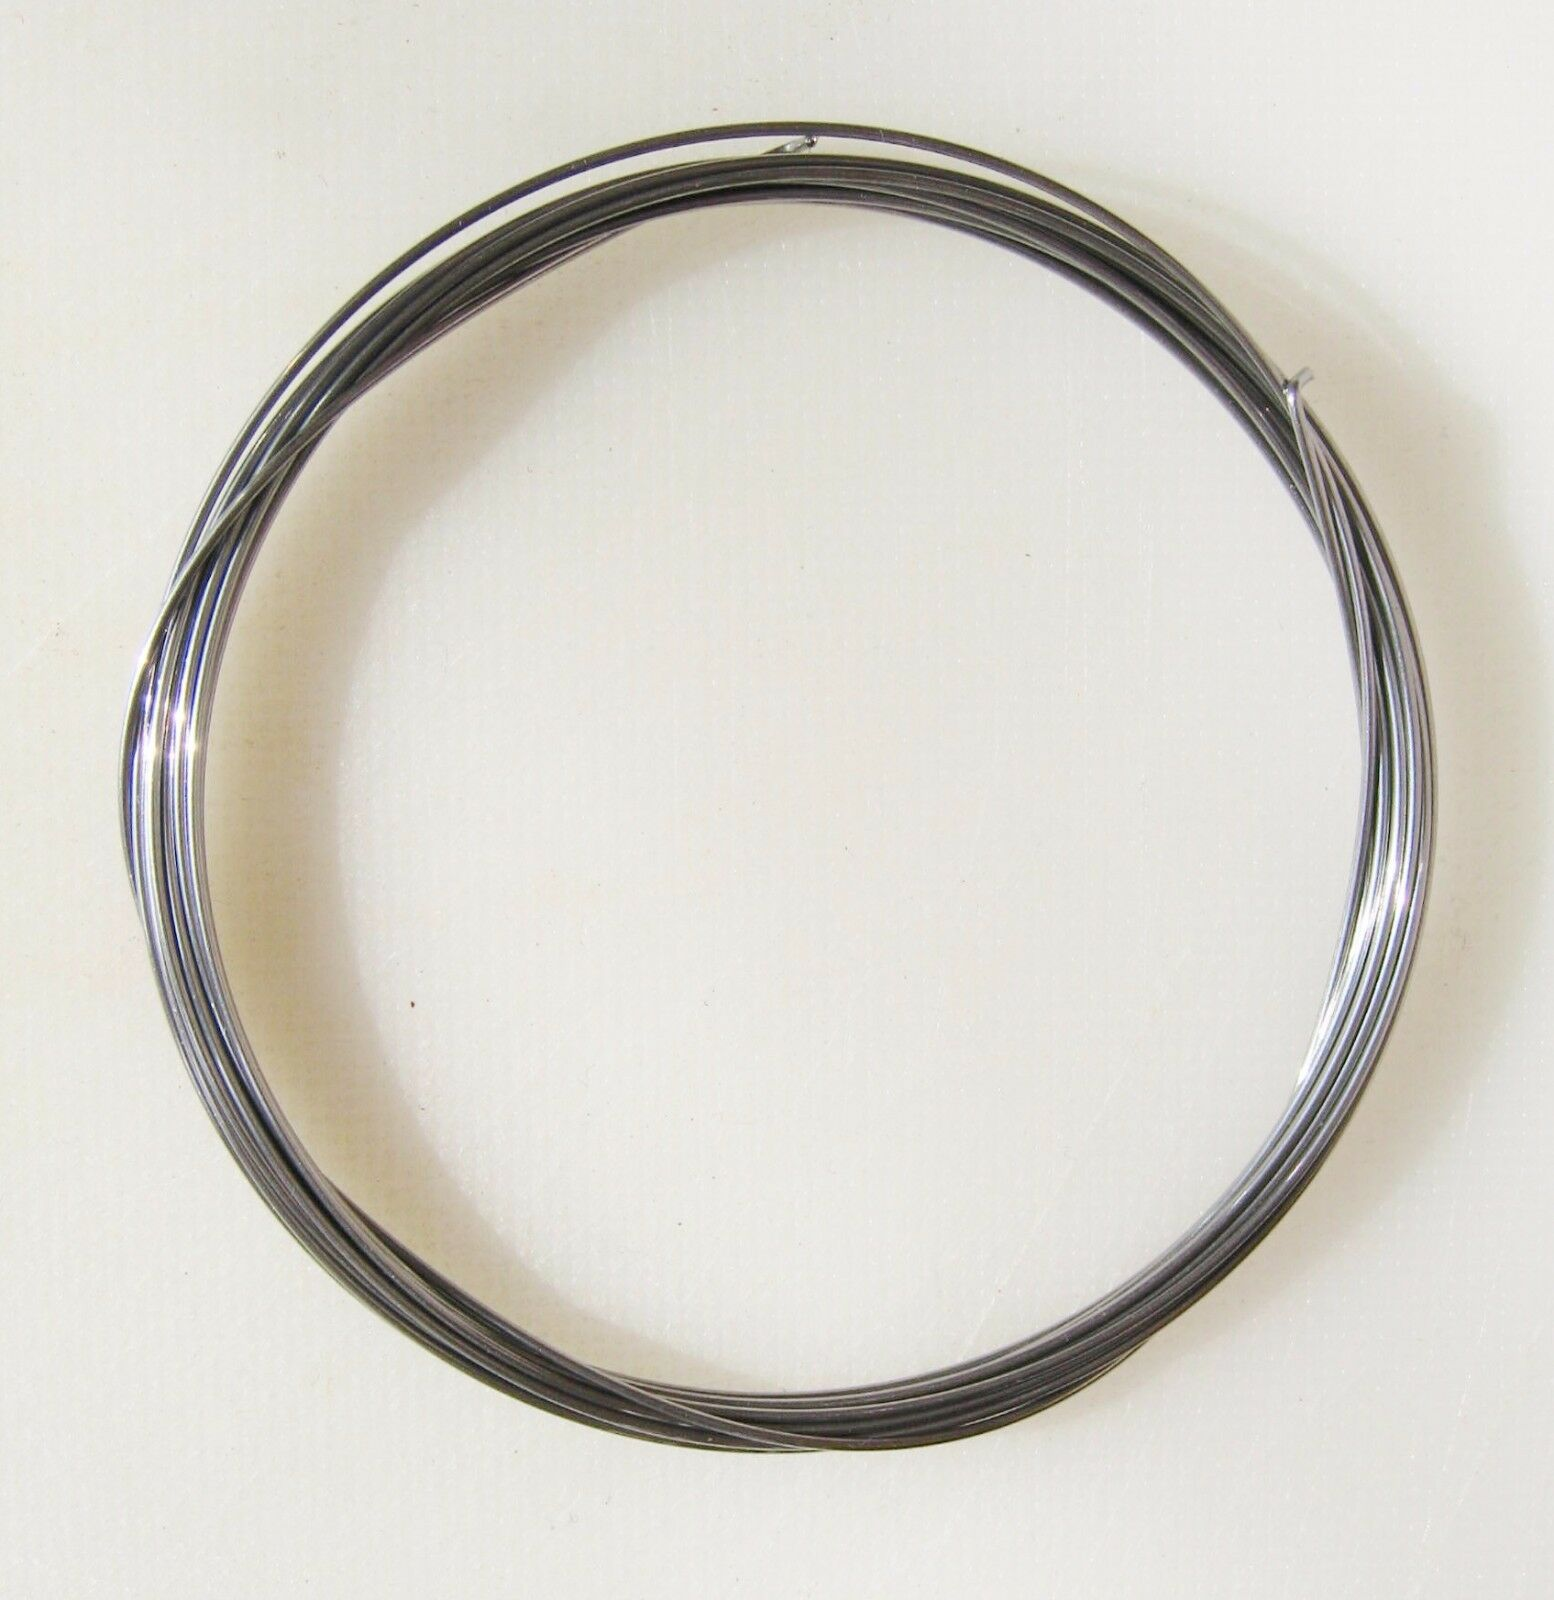 Piano Wire Spring Steel-6 metres(19ft 6 )SIZES-16swg to 36swg Toys, Games,Crafts